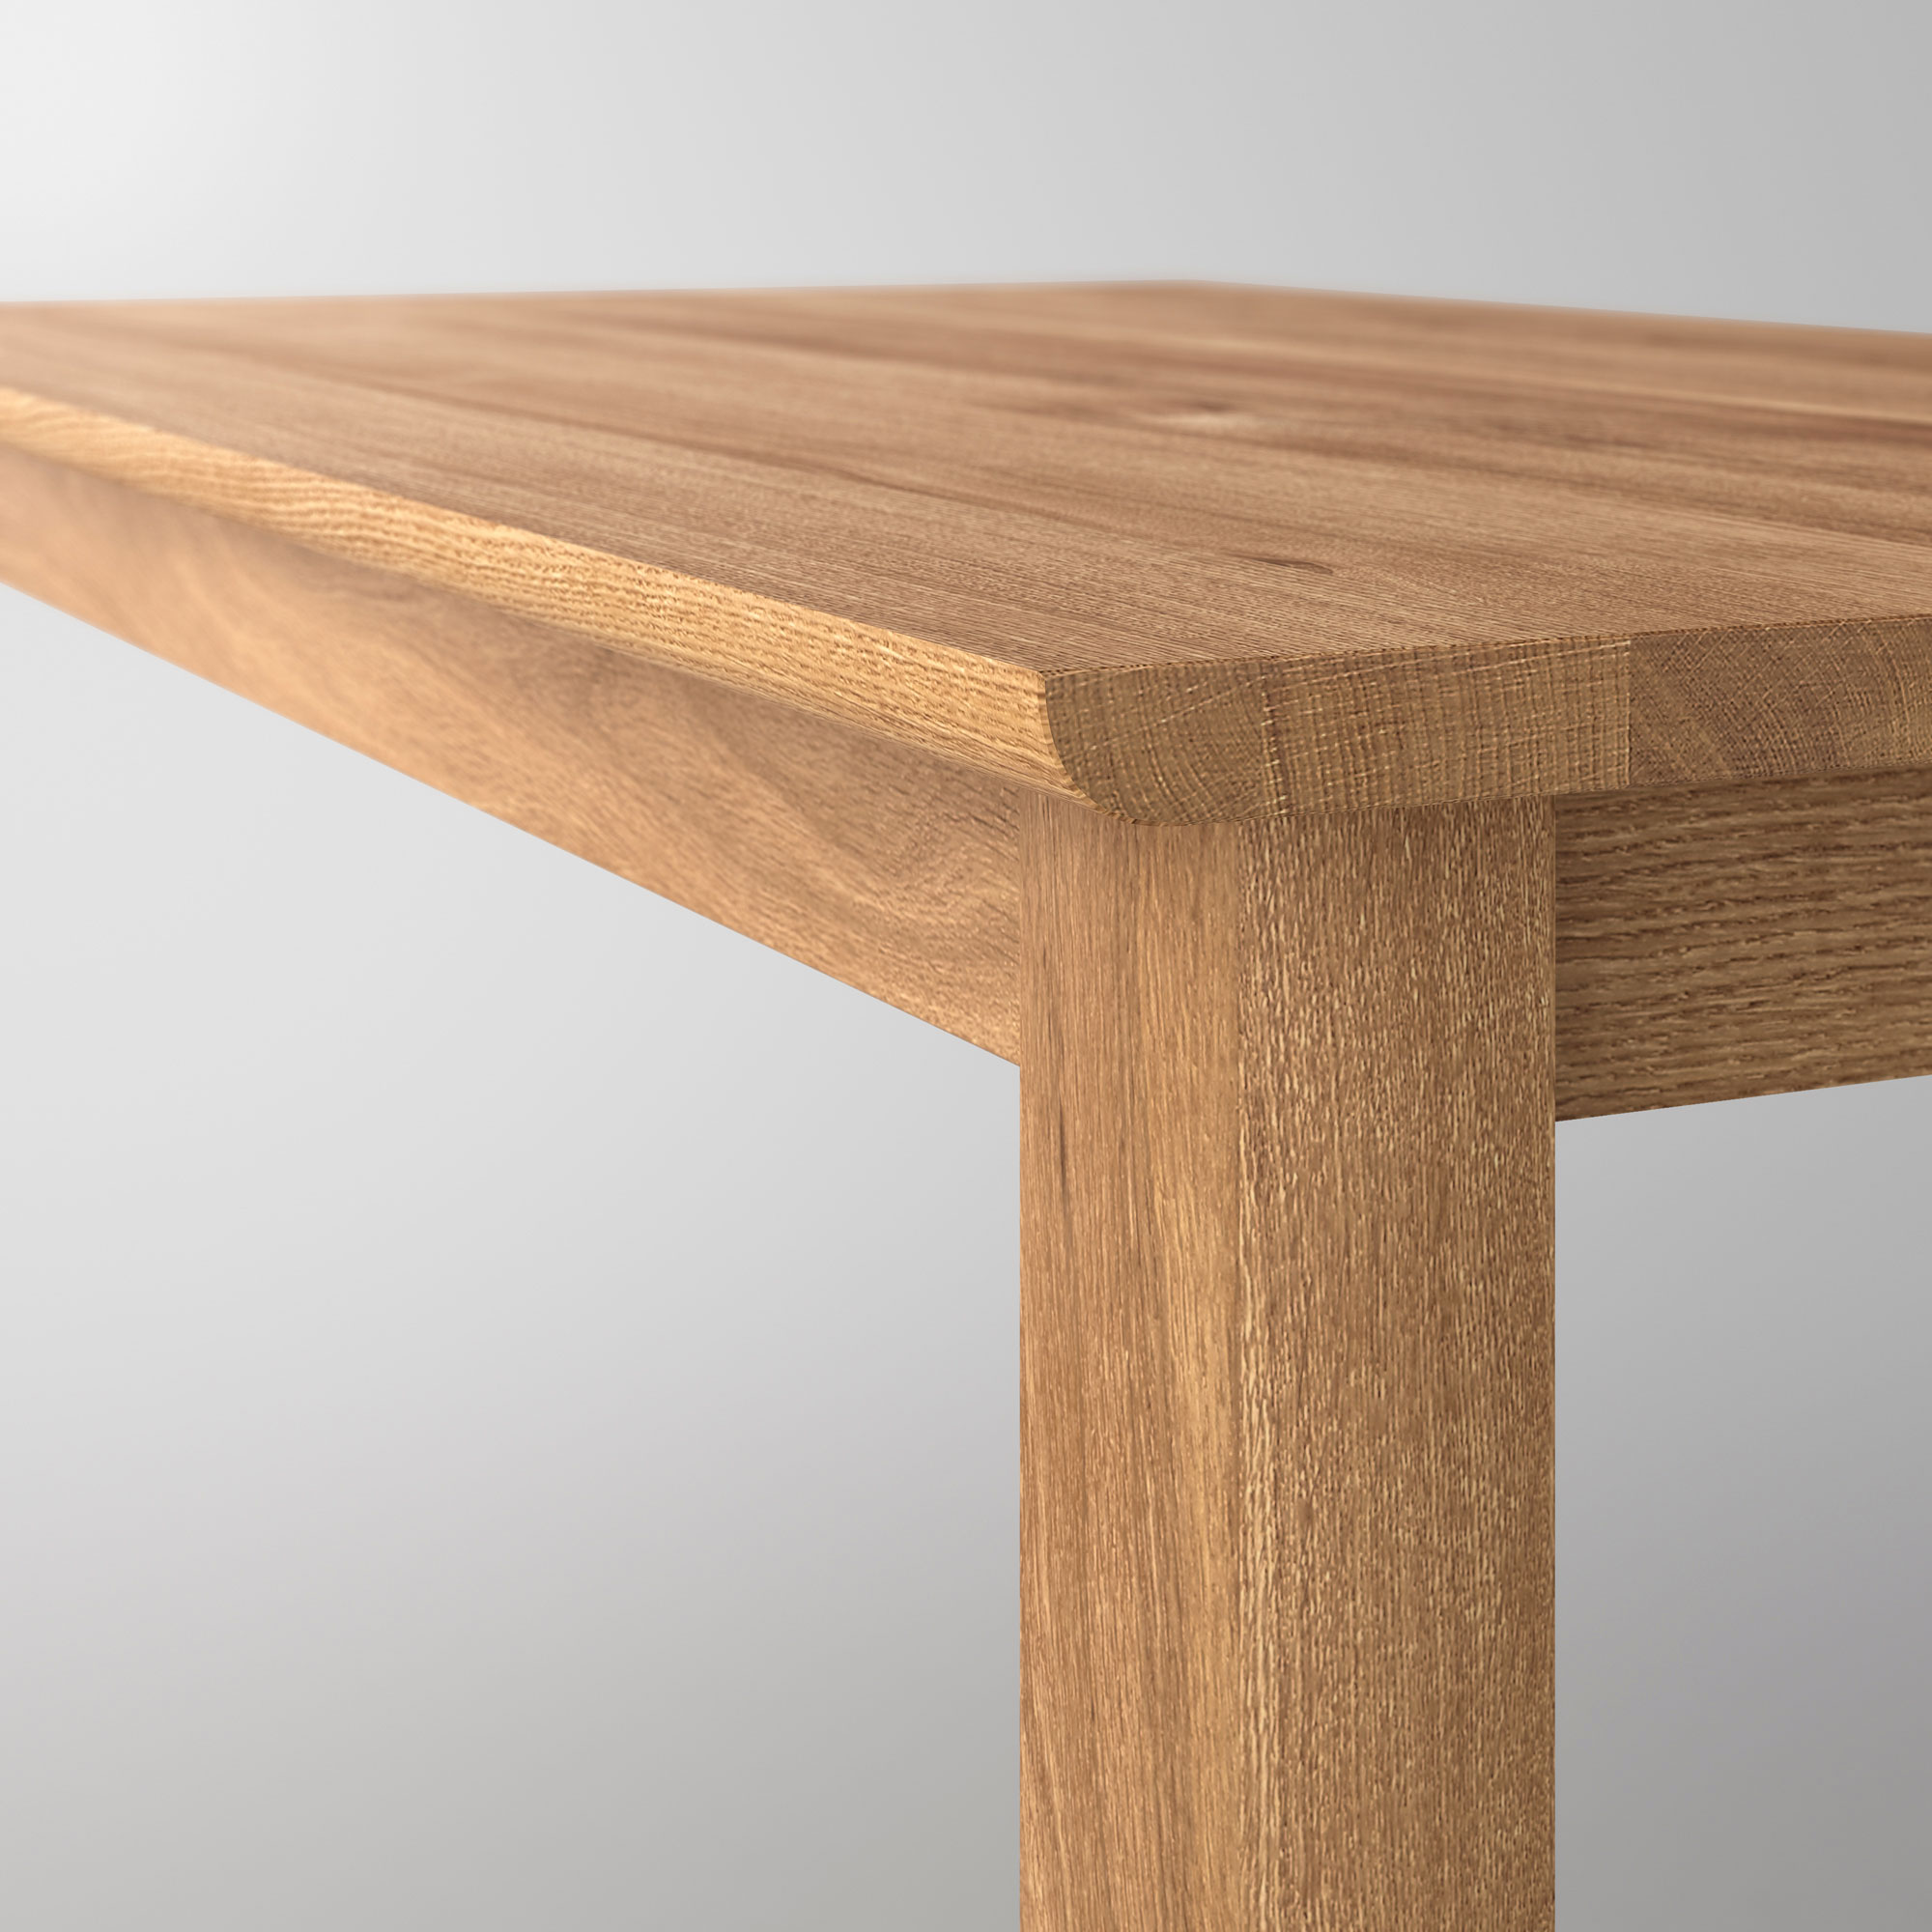 Extendable Dining Table VIVUS BUTTERFLY Cam4 custom made in solid wood by vitamin design